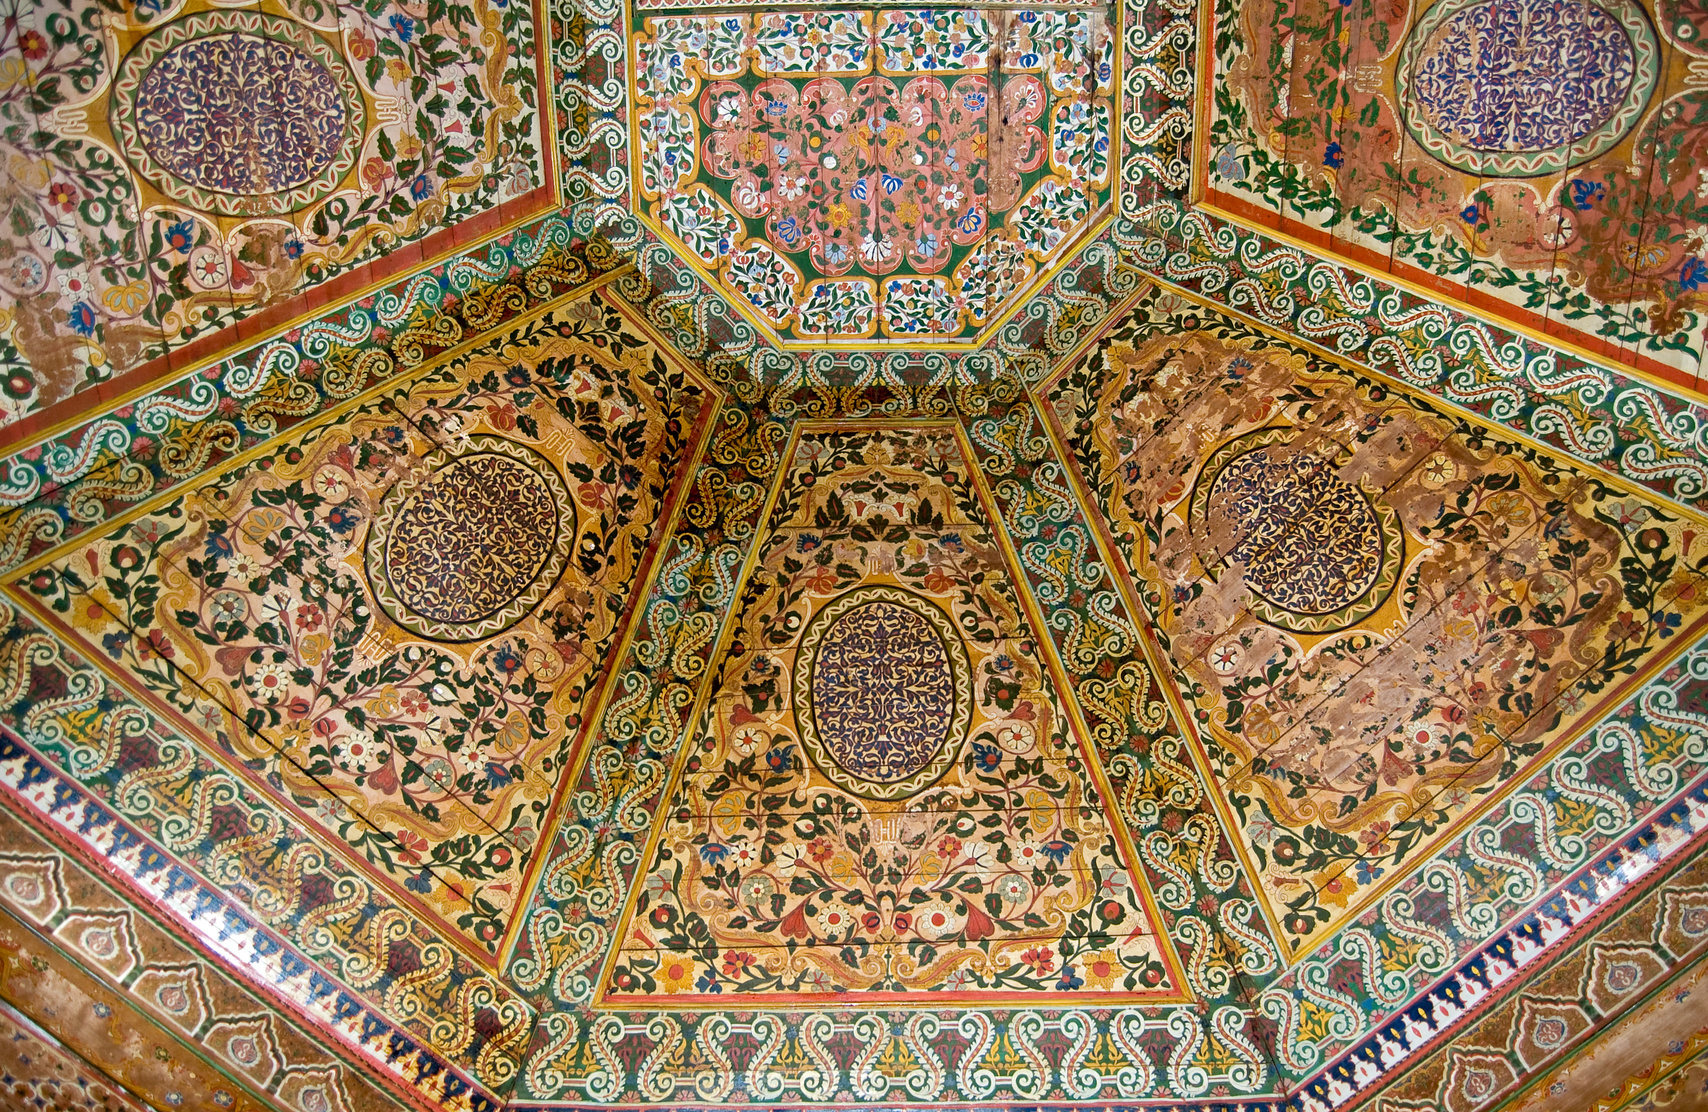 Hand Painted Painted wooden ceiling